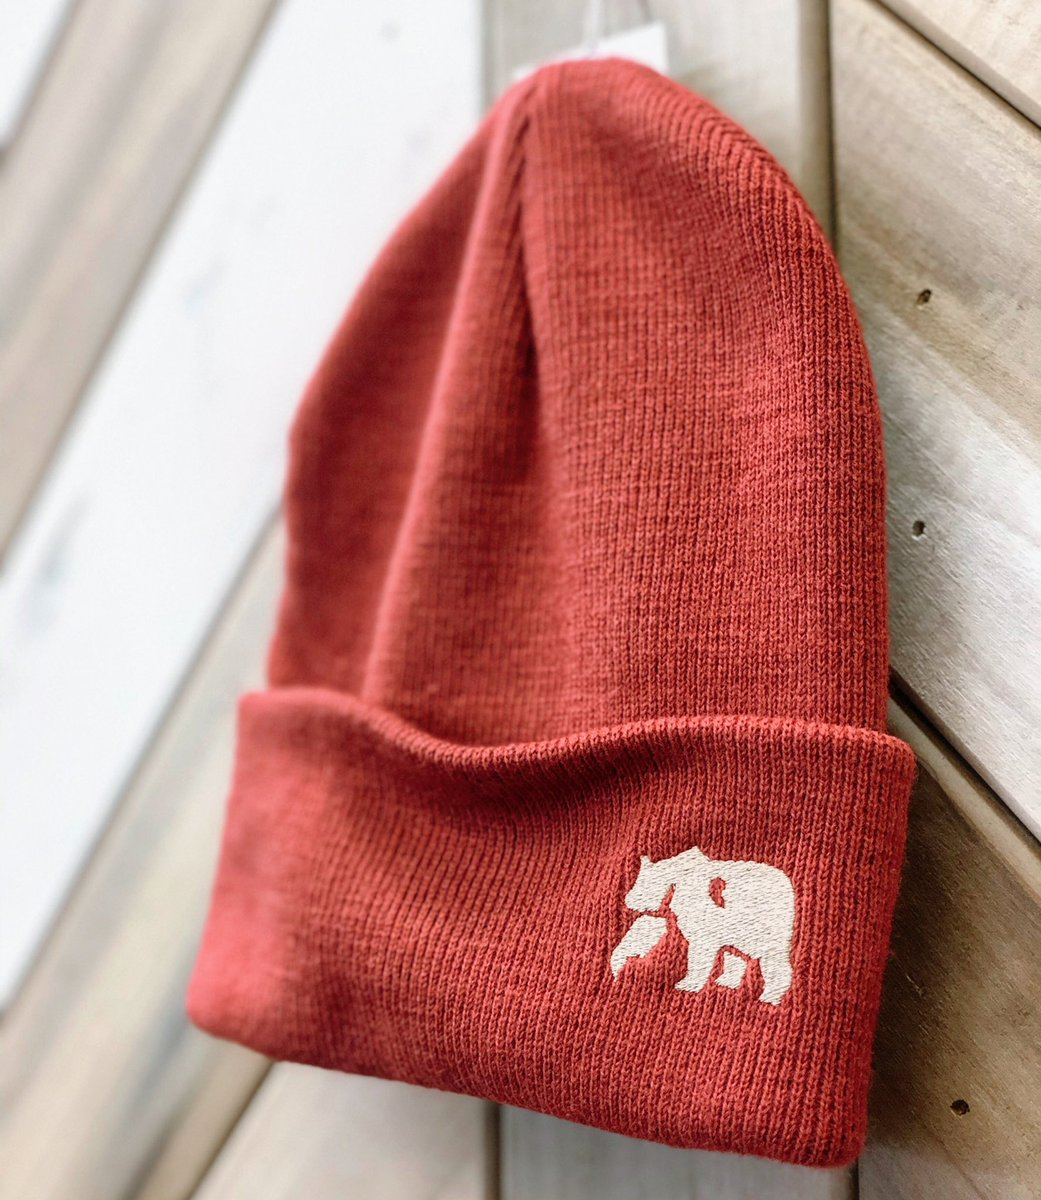 Tired of your ears getting cold while walking to class? This @thenormalbrand knit beanie is here for you. ❄️